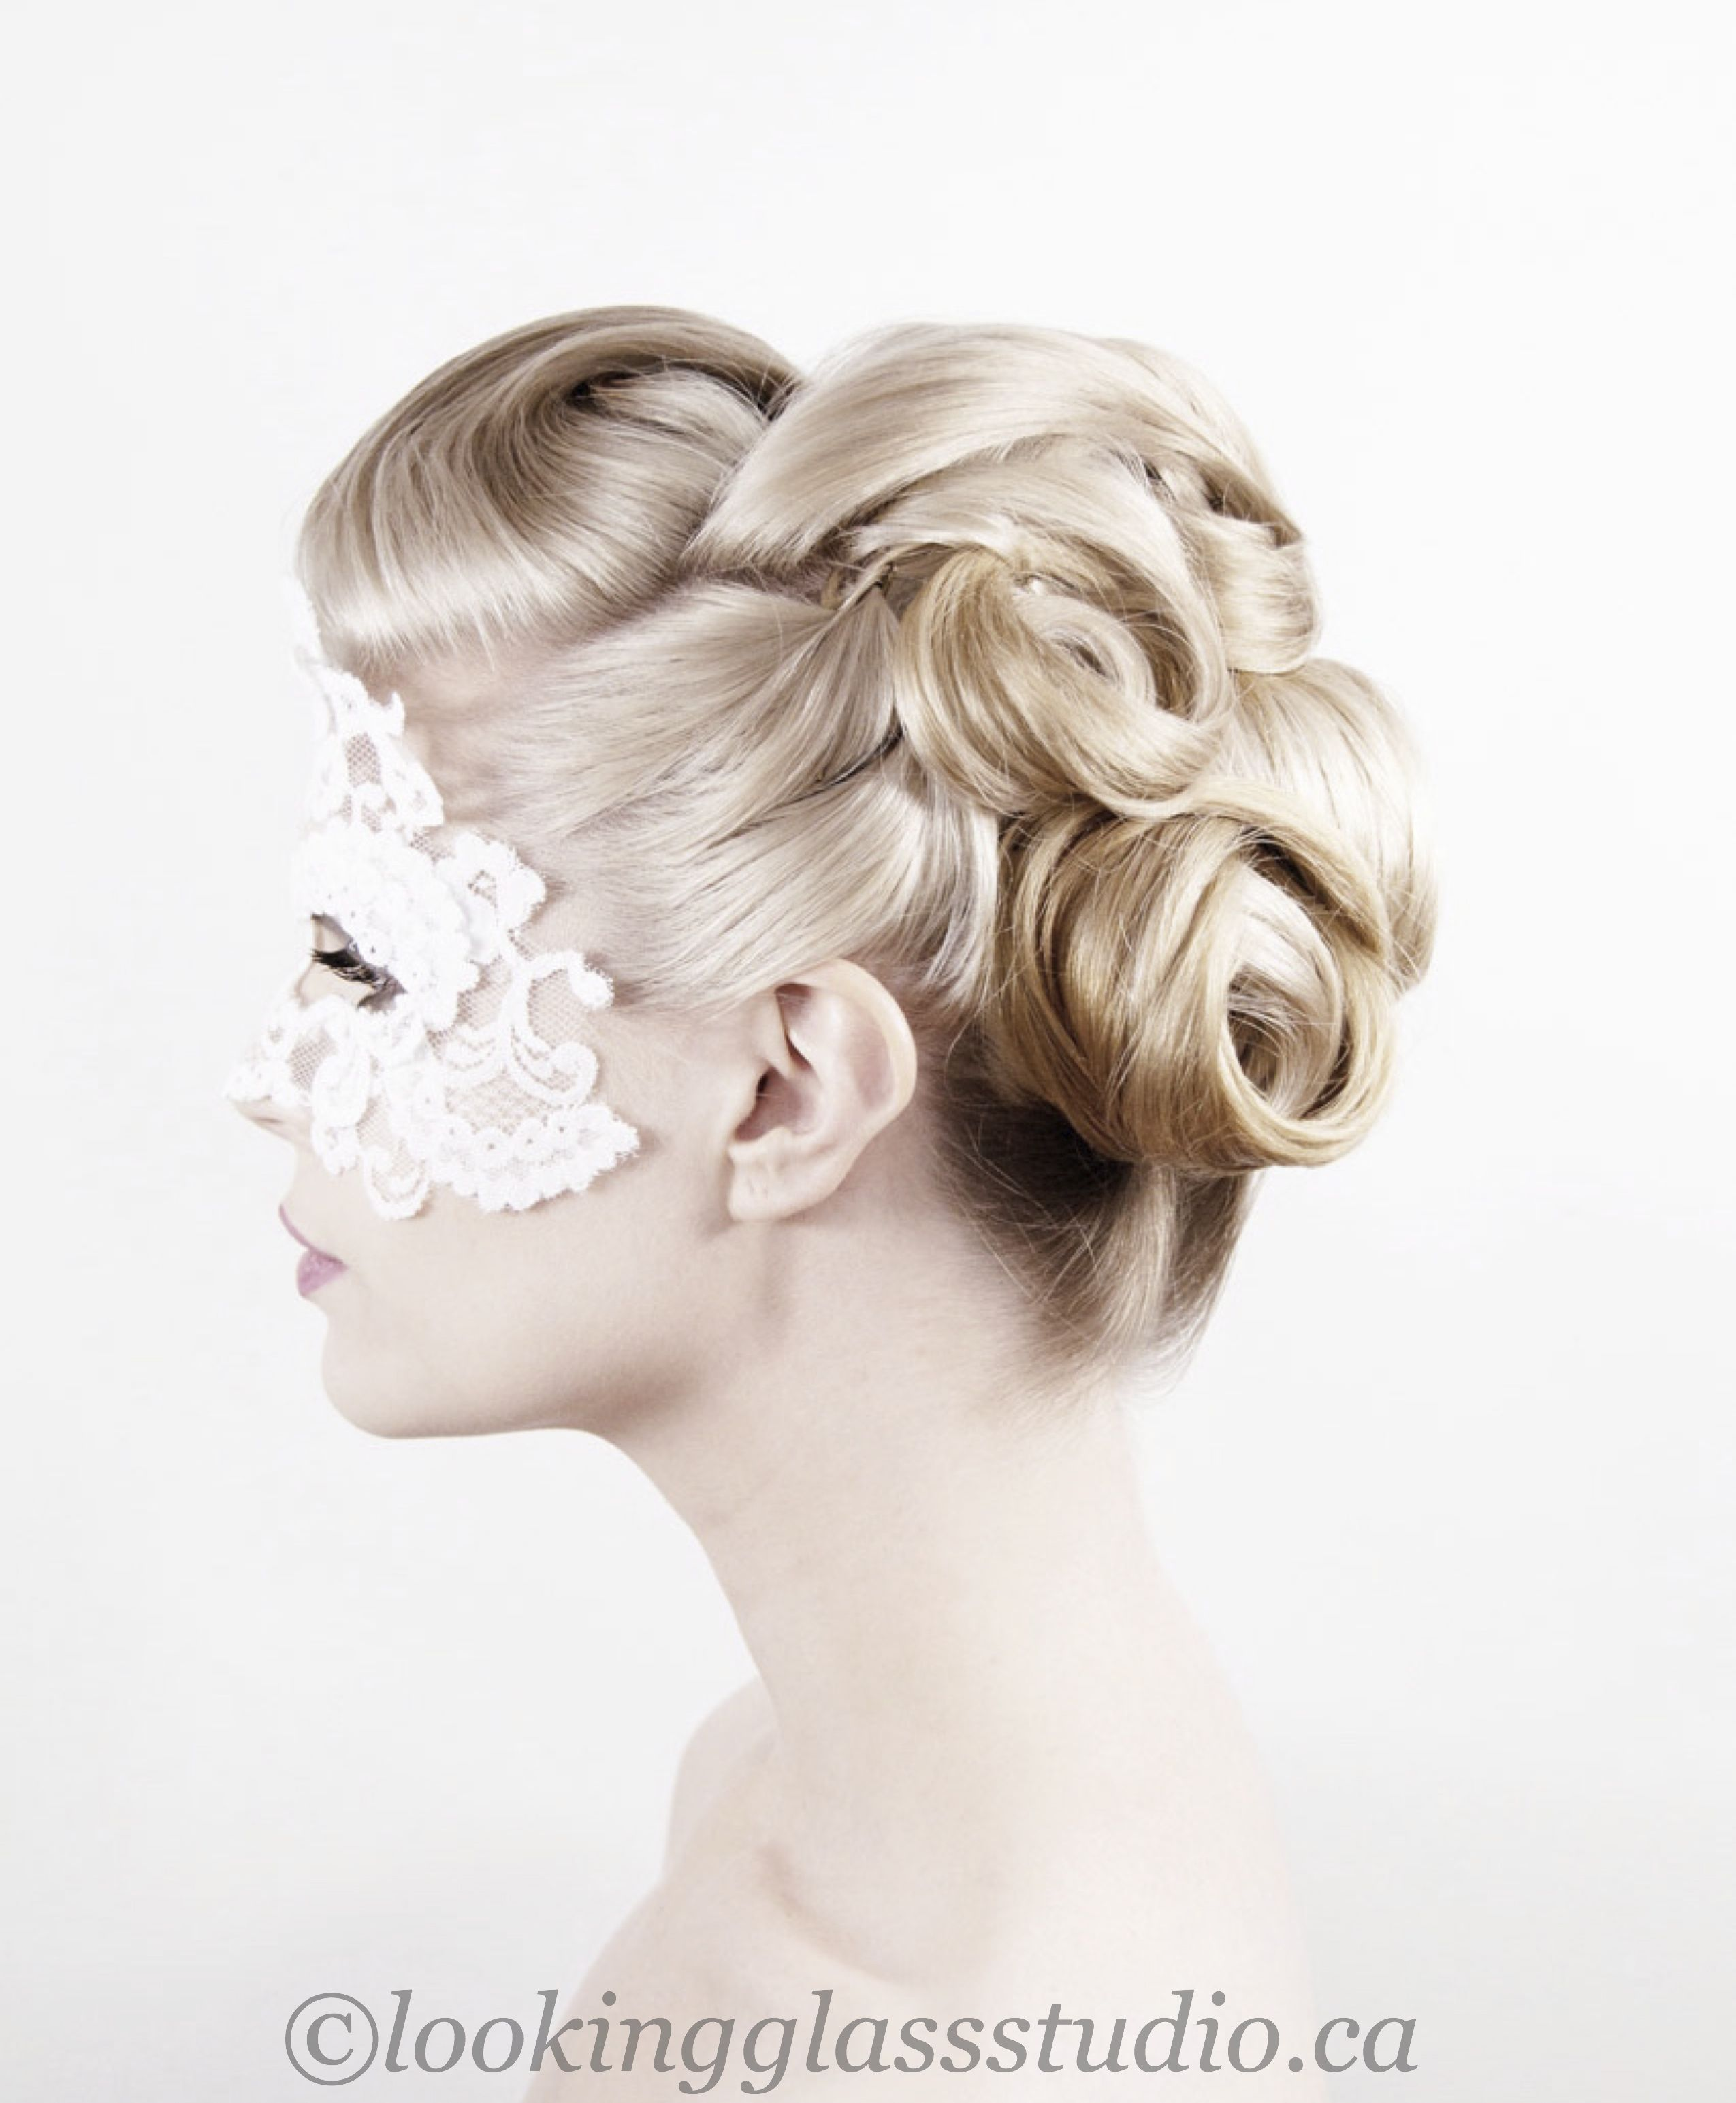 Wedding updo, bridal hair, pin curls www.lookingglassstudio.ca ...